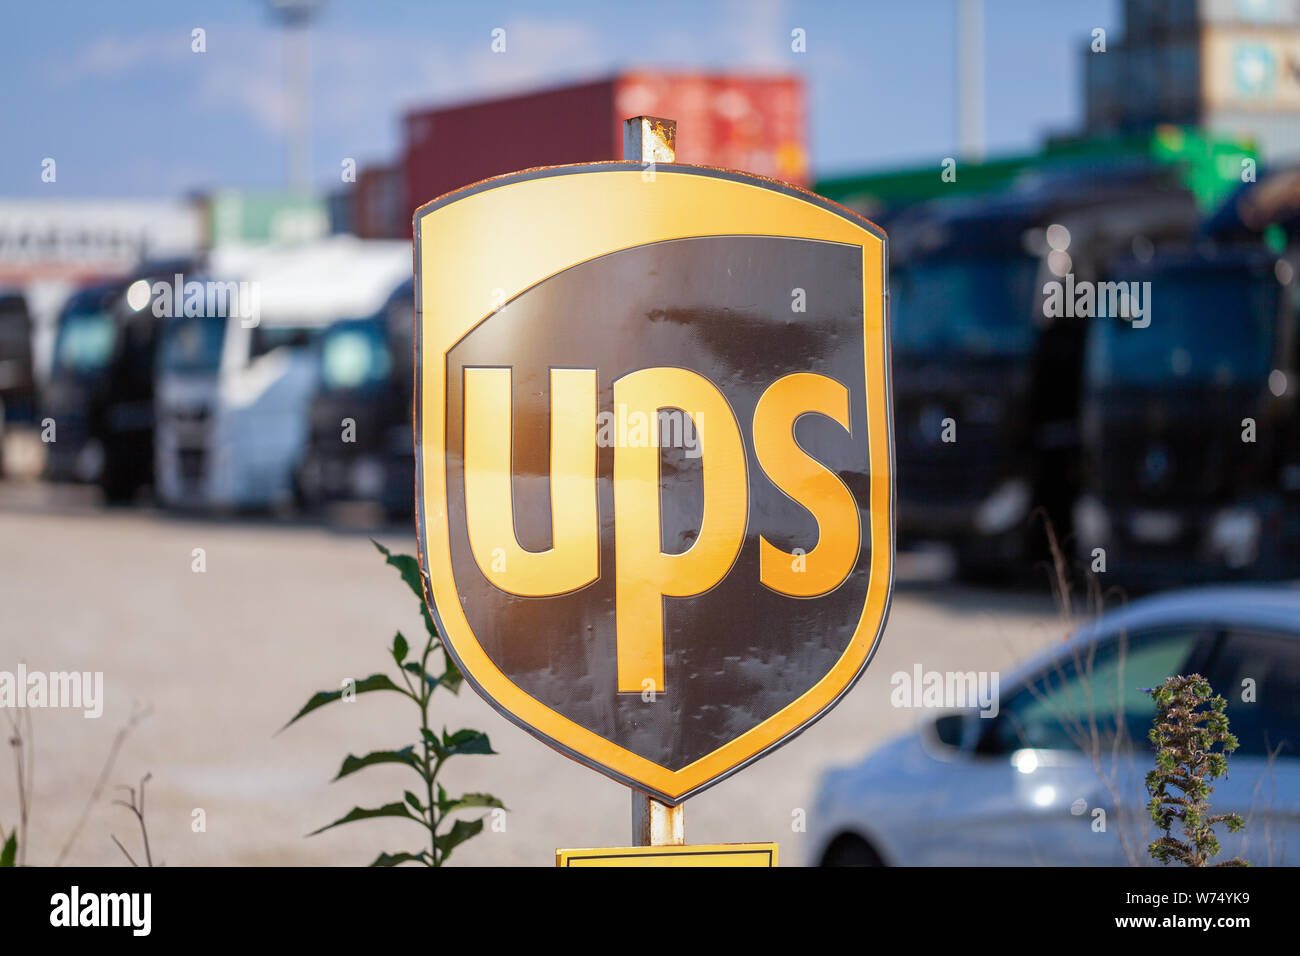 NUREMBERG / GERMANY - AUGUST 4, 2019: Company sign from the